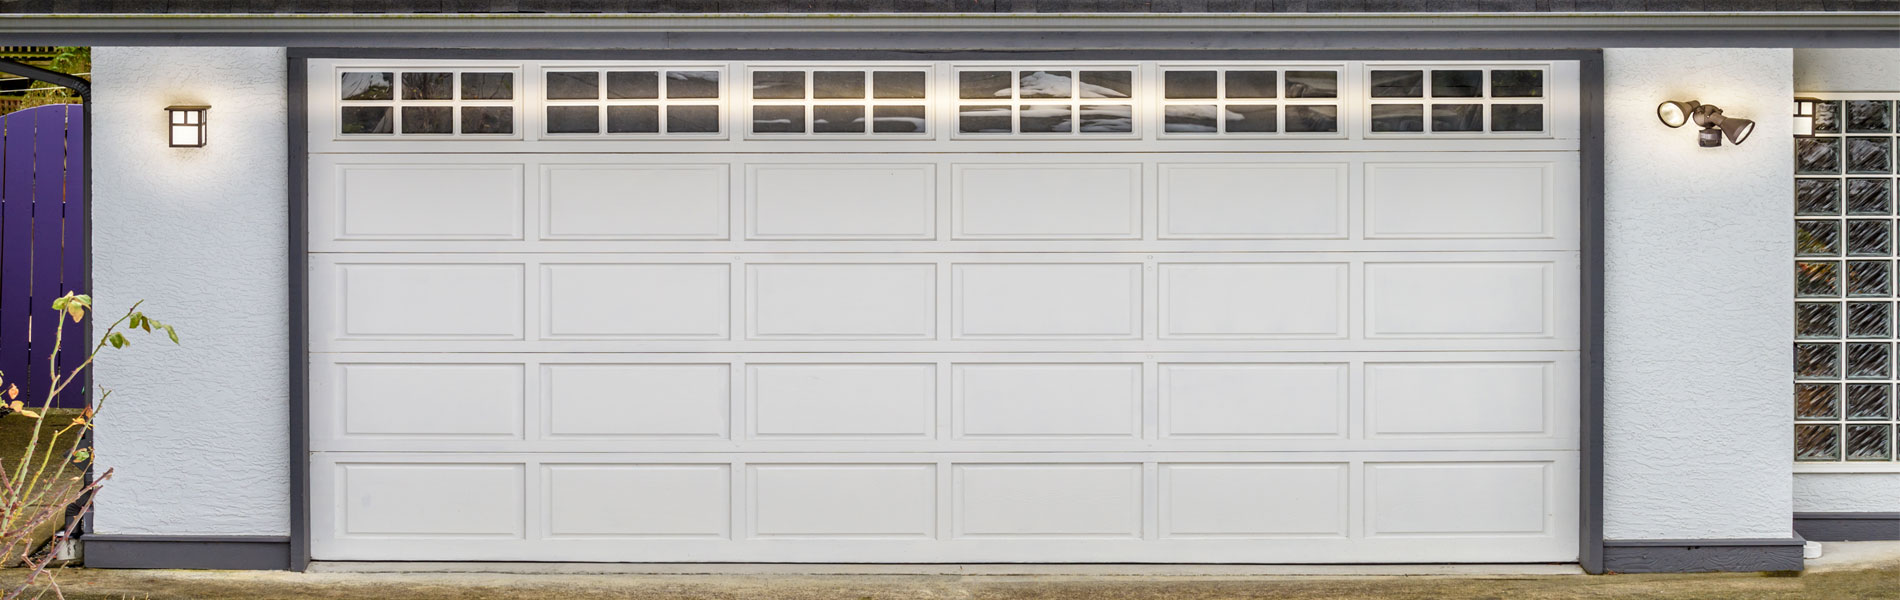 Exclusive Garage Door Repair Service, St Paul, MN 651-404-2112